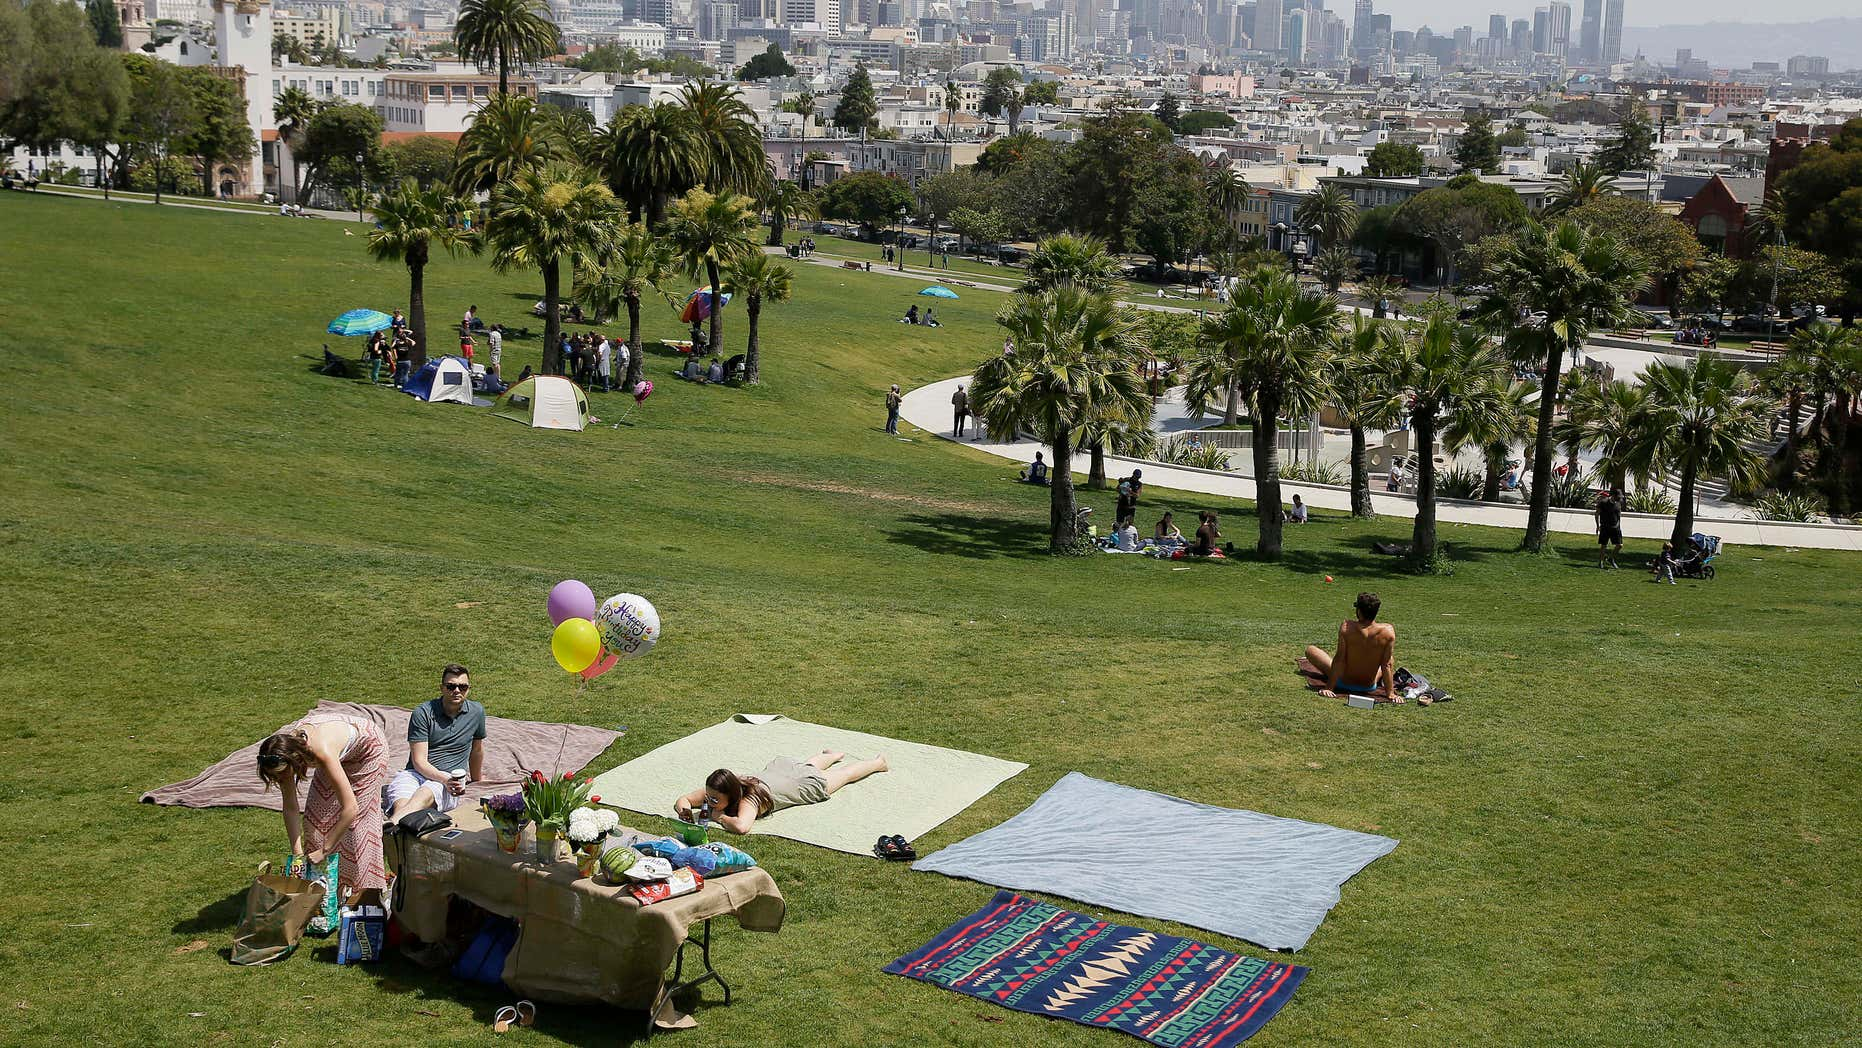 May 28, 2016: A group spreads out blankets for a party at Dolores Park in San Francisco.